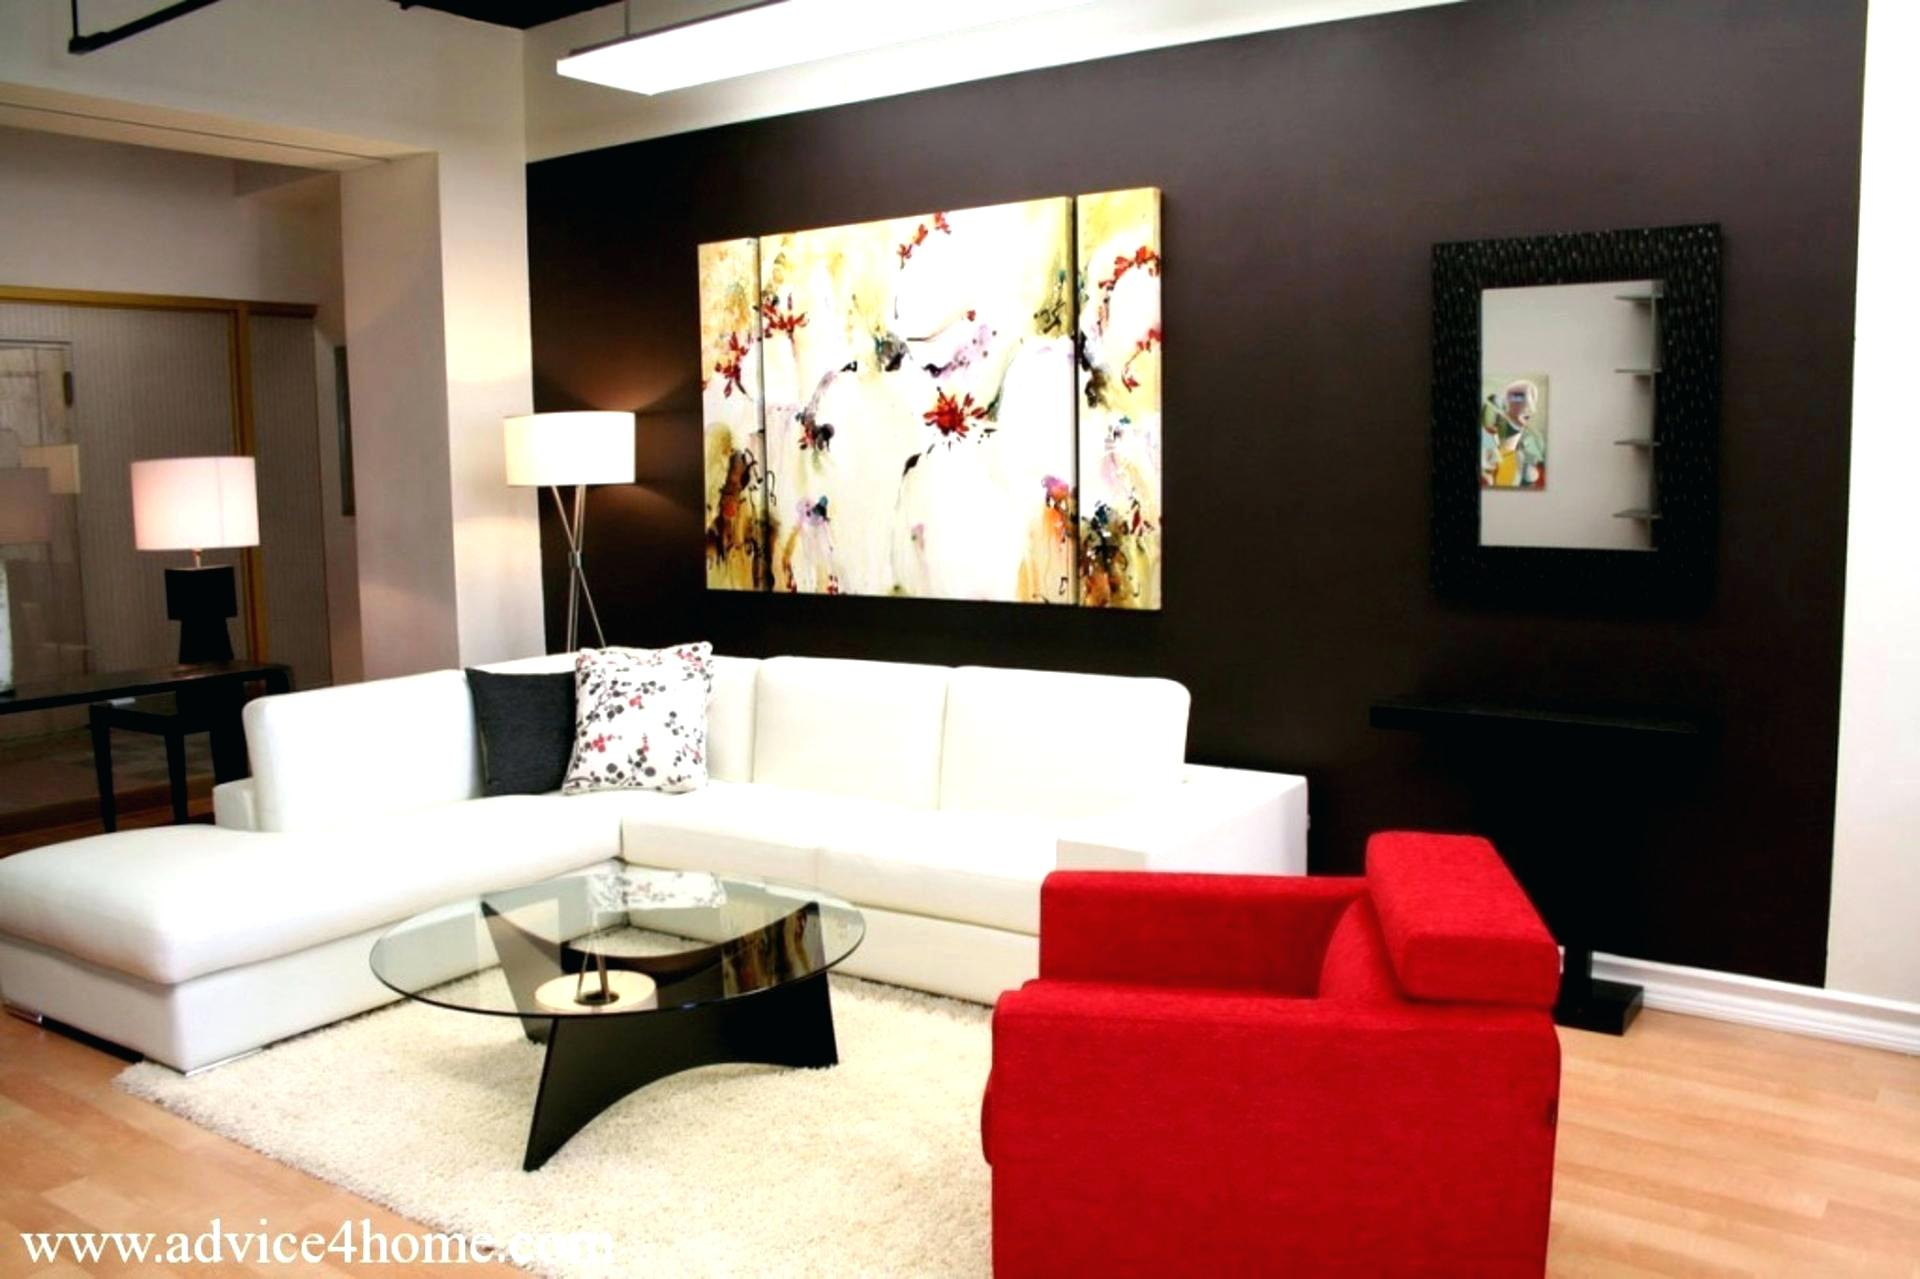 Red Black And White Living Room Black And White Living Room intended for 15 Genius Concepts of How to Upgrade Red Black And White Living Room Set